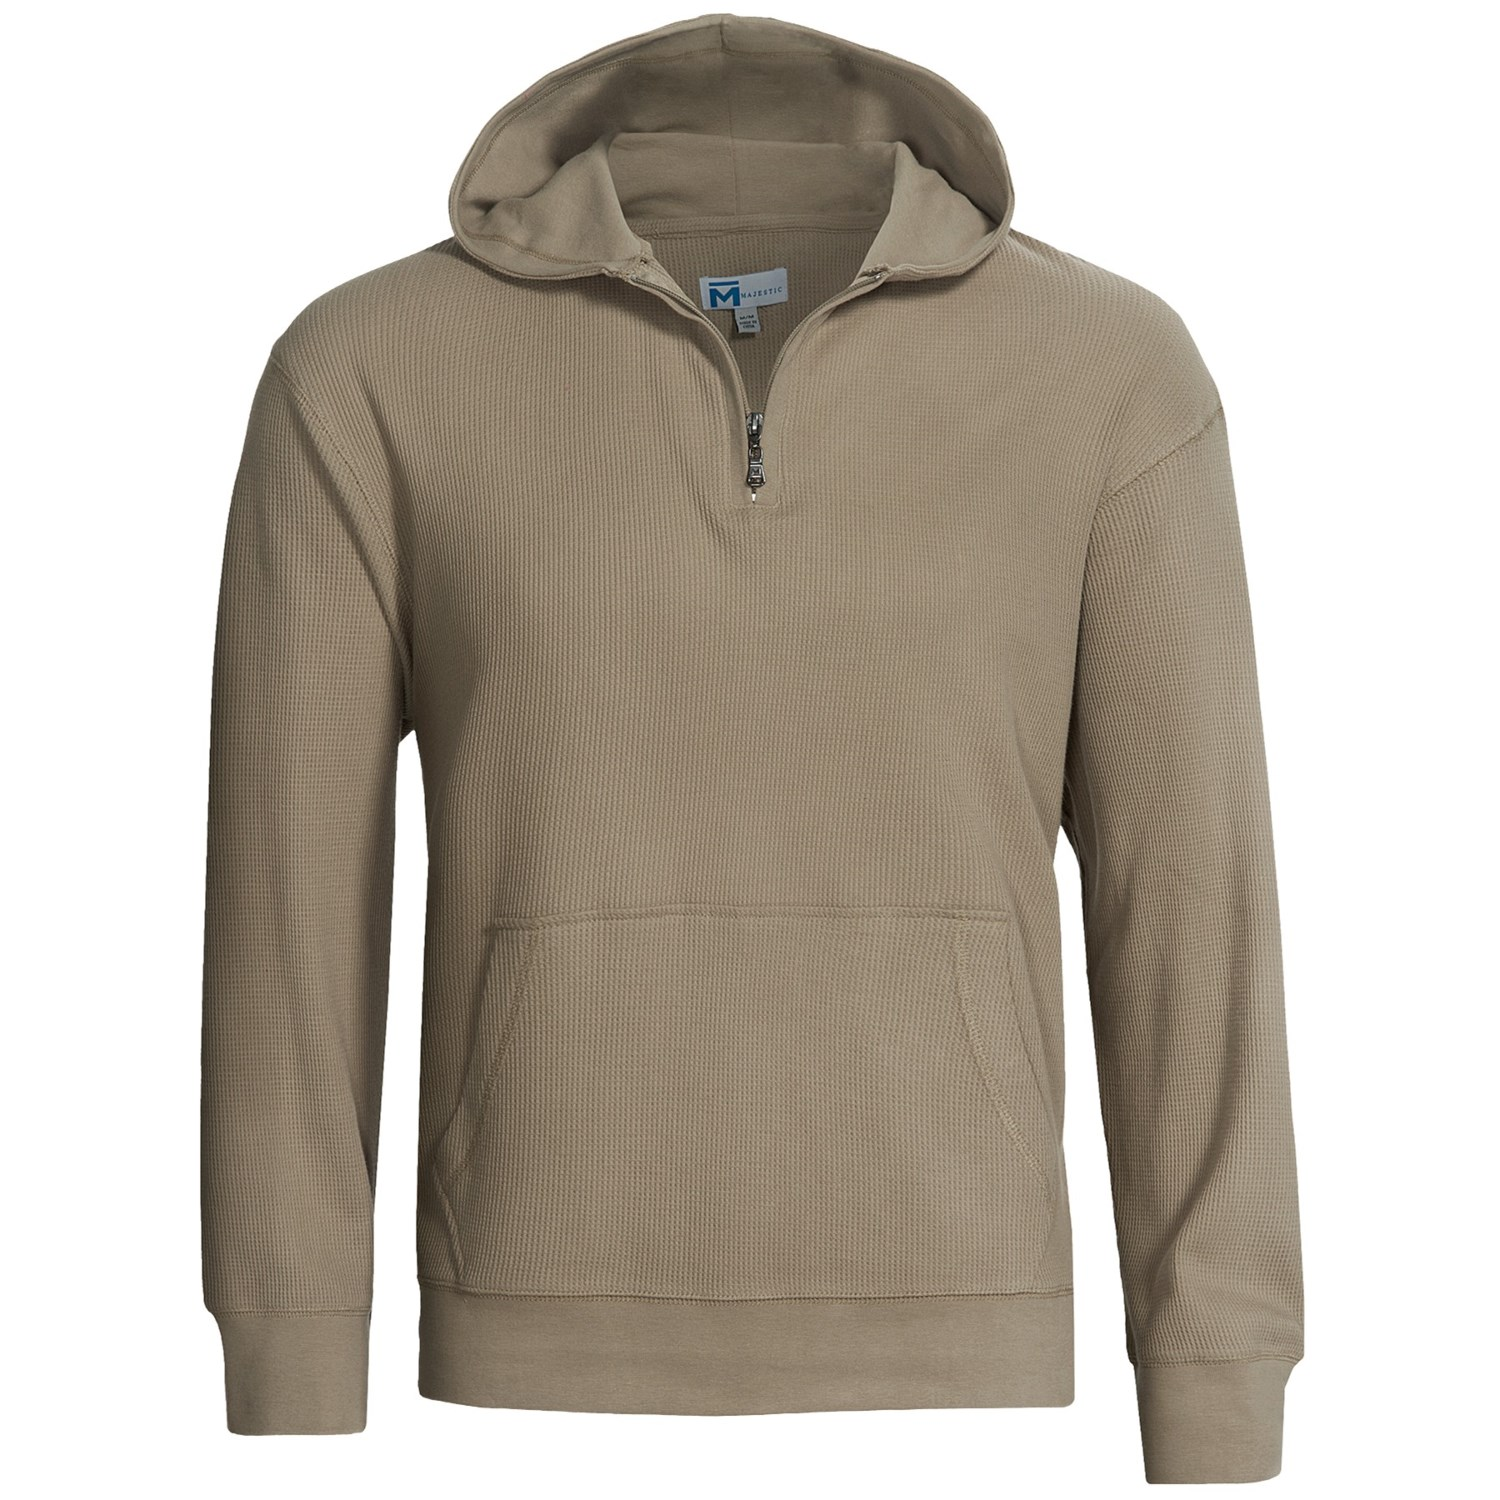 Majestic Knit Thermal Hoodie Sweatshirt - Zip Neck (For Men) in String